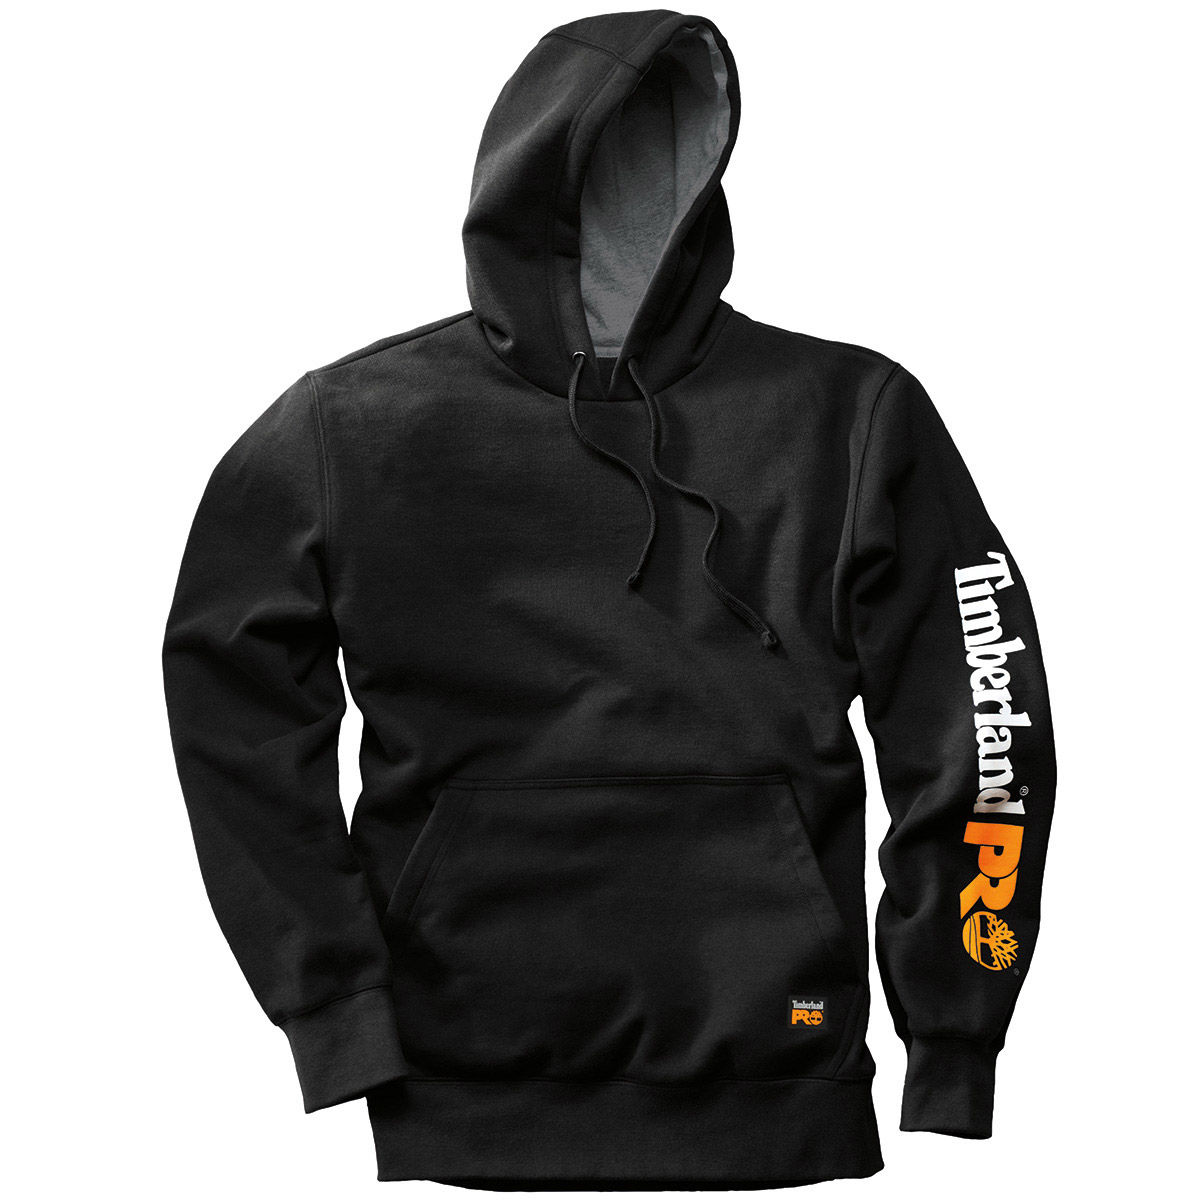 Timberland Pro Men's Hood Honcho Pullover Hoodie - Black, L